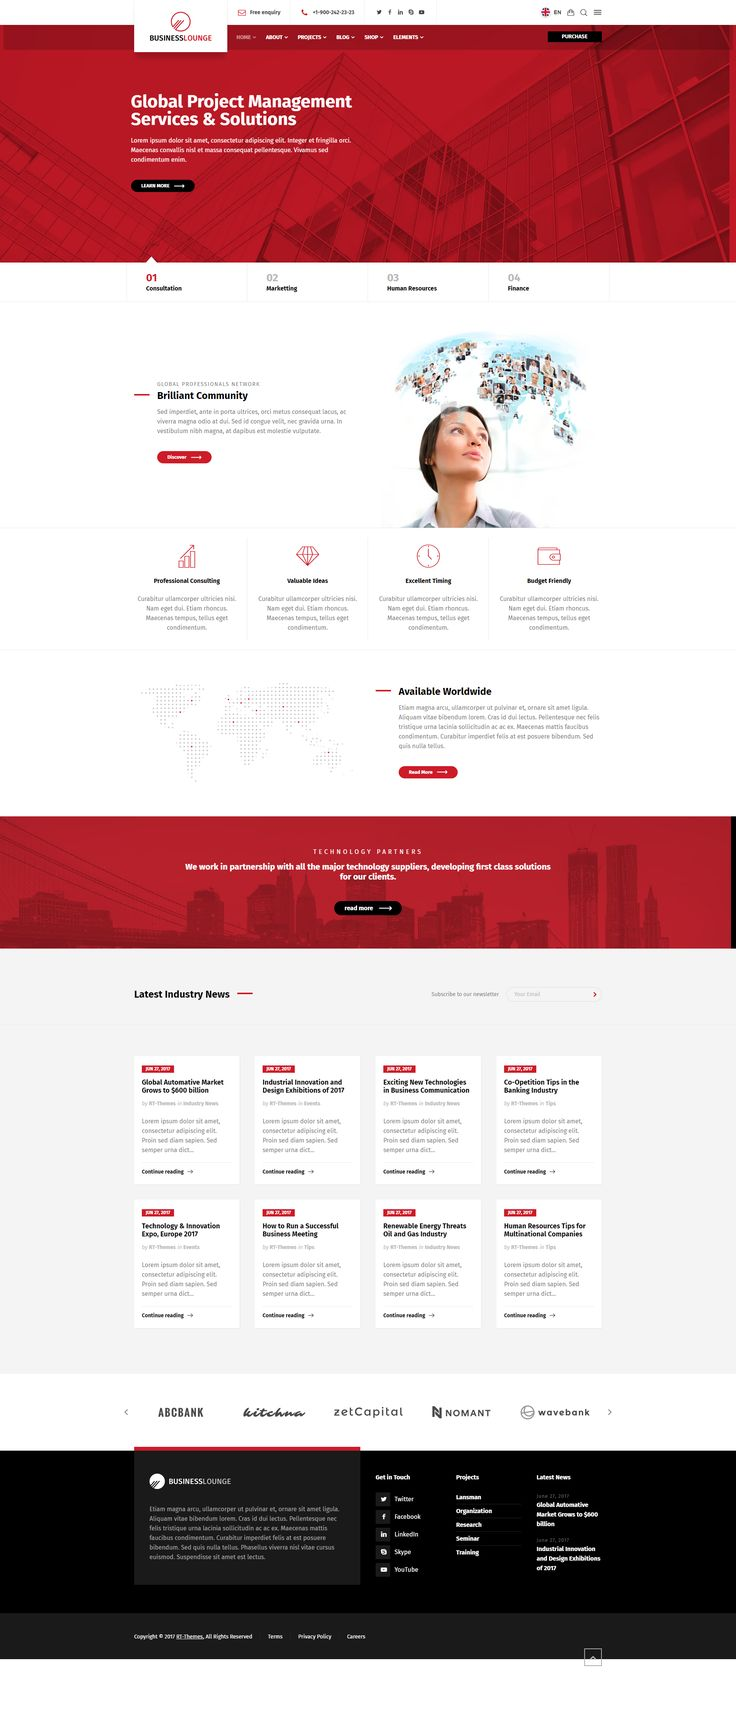 Business Lounge (RT-Theme 23) is a highly customizable #theme created for all kind of #business, info, and service #websites. Install, customize, create easily with the included powerful tools without touching a code. We have analyzed hundreds of business, consulting, finance, services and similar type of websites and created solutions for common problems. Business Lounge comes with powerful tools and comprehensive layouts you need to create a professional business website with a modern…